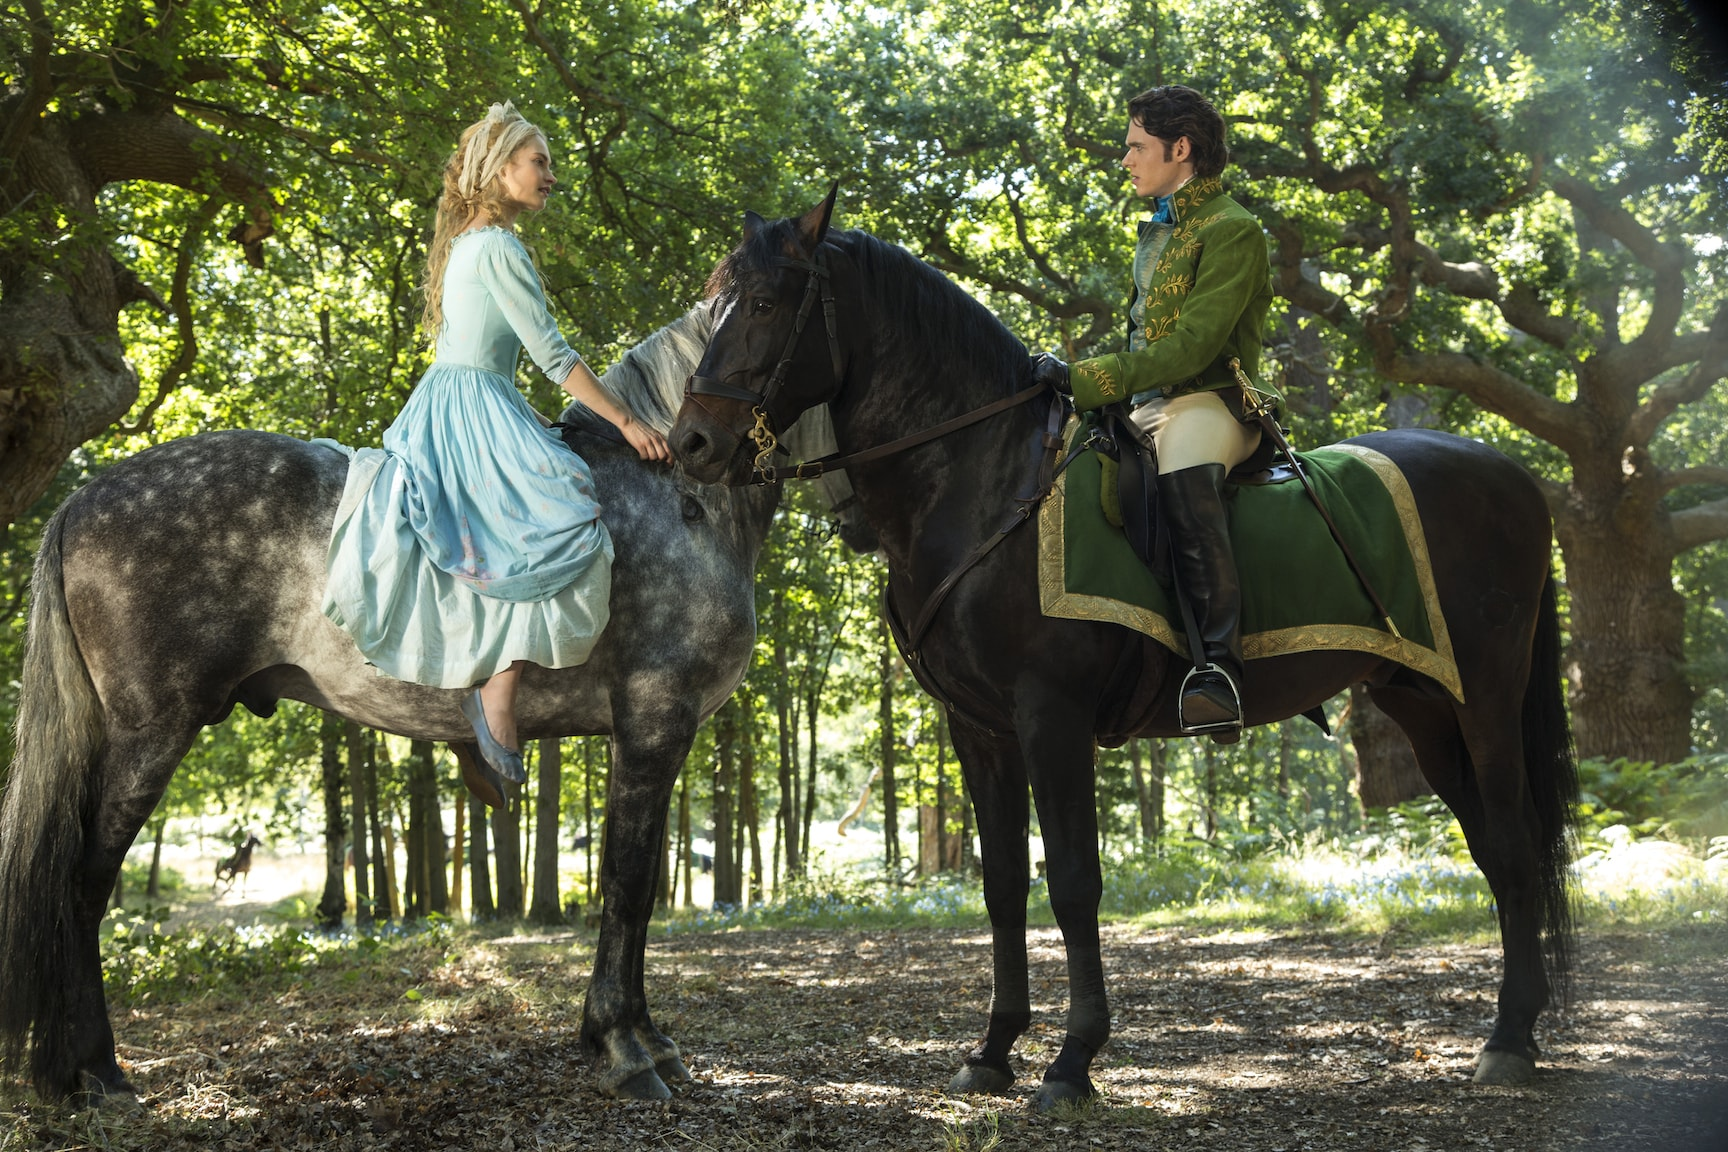 Actors Richard Madden (as the Prince) and Lily James (as Cinderella) on horseback in the movie Cinderella.